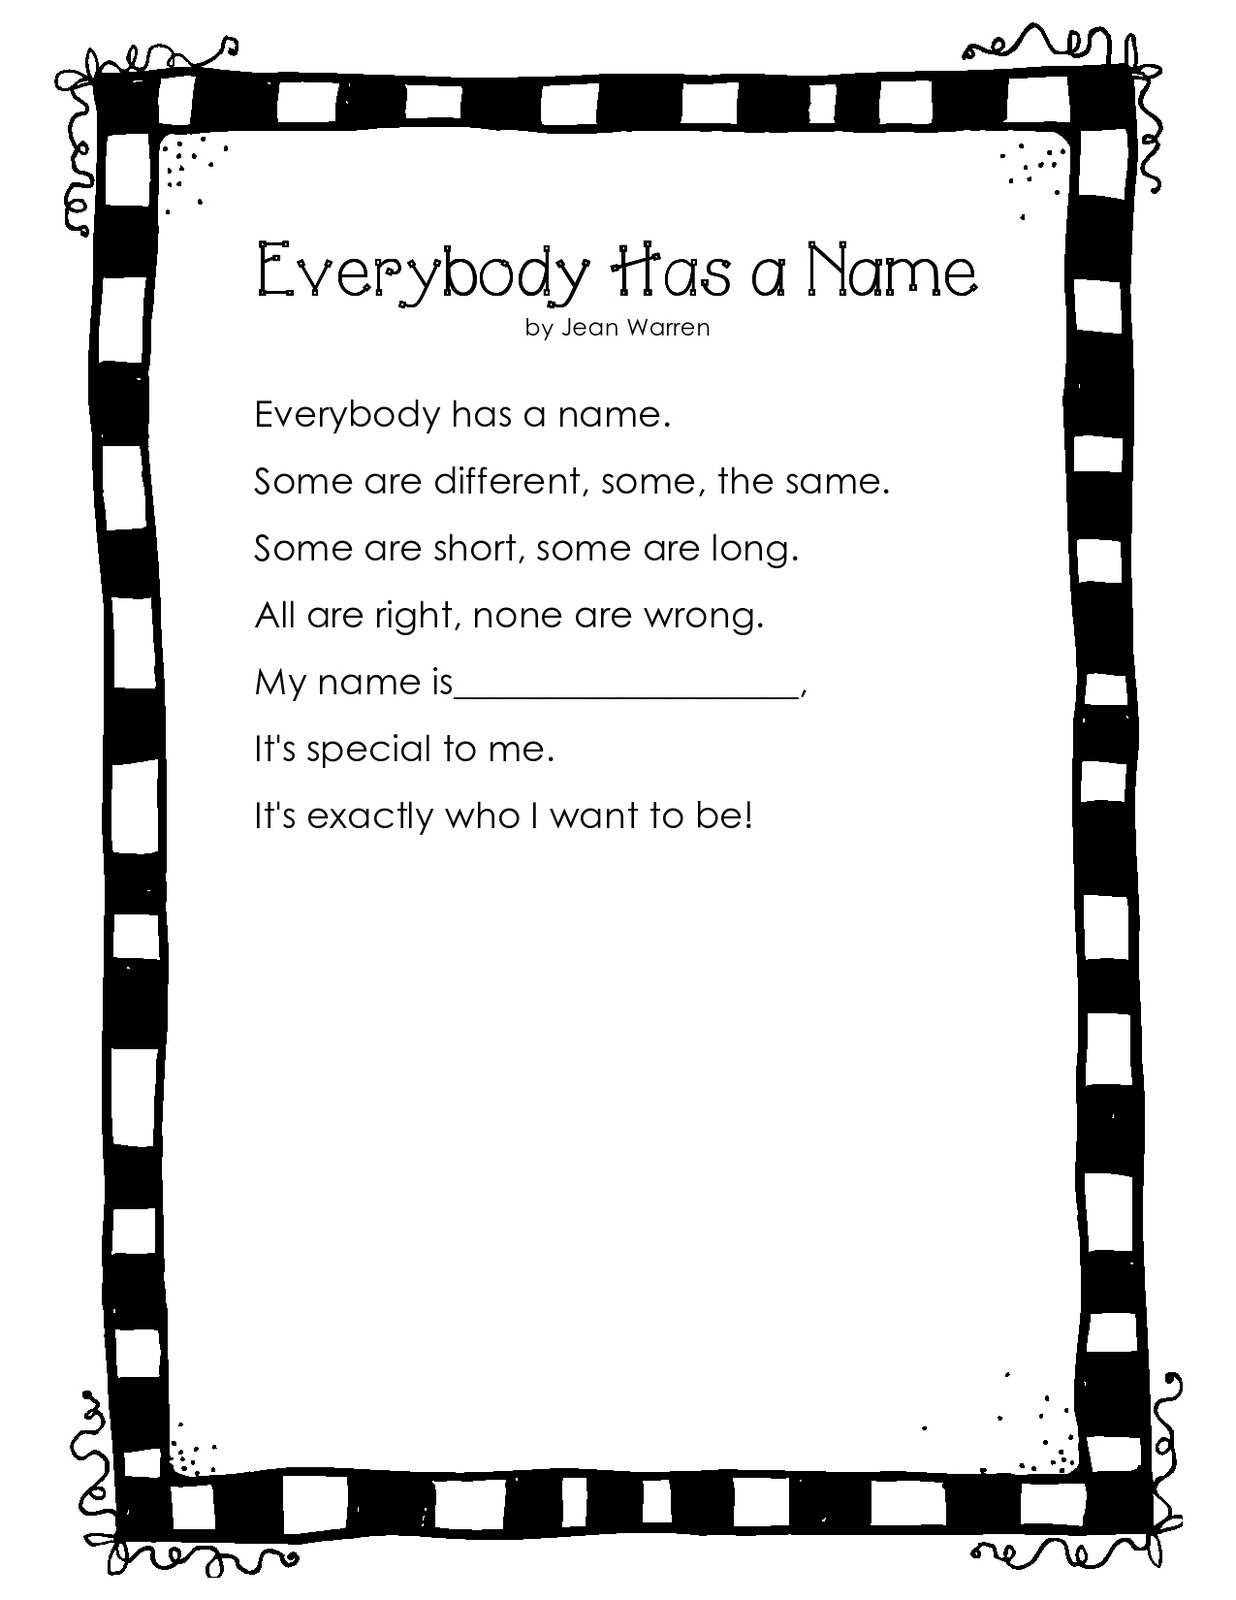 Kids can draw and color a self-portrait at the bottom of this poem ...